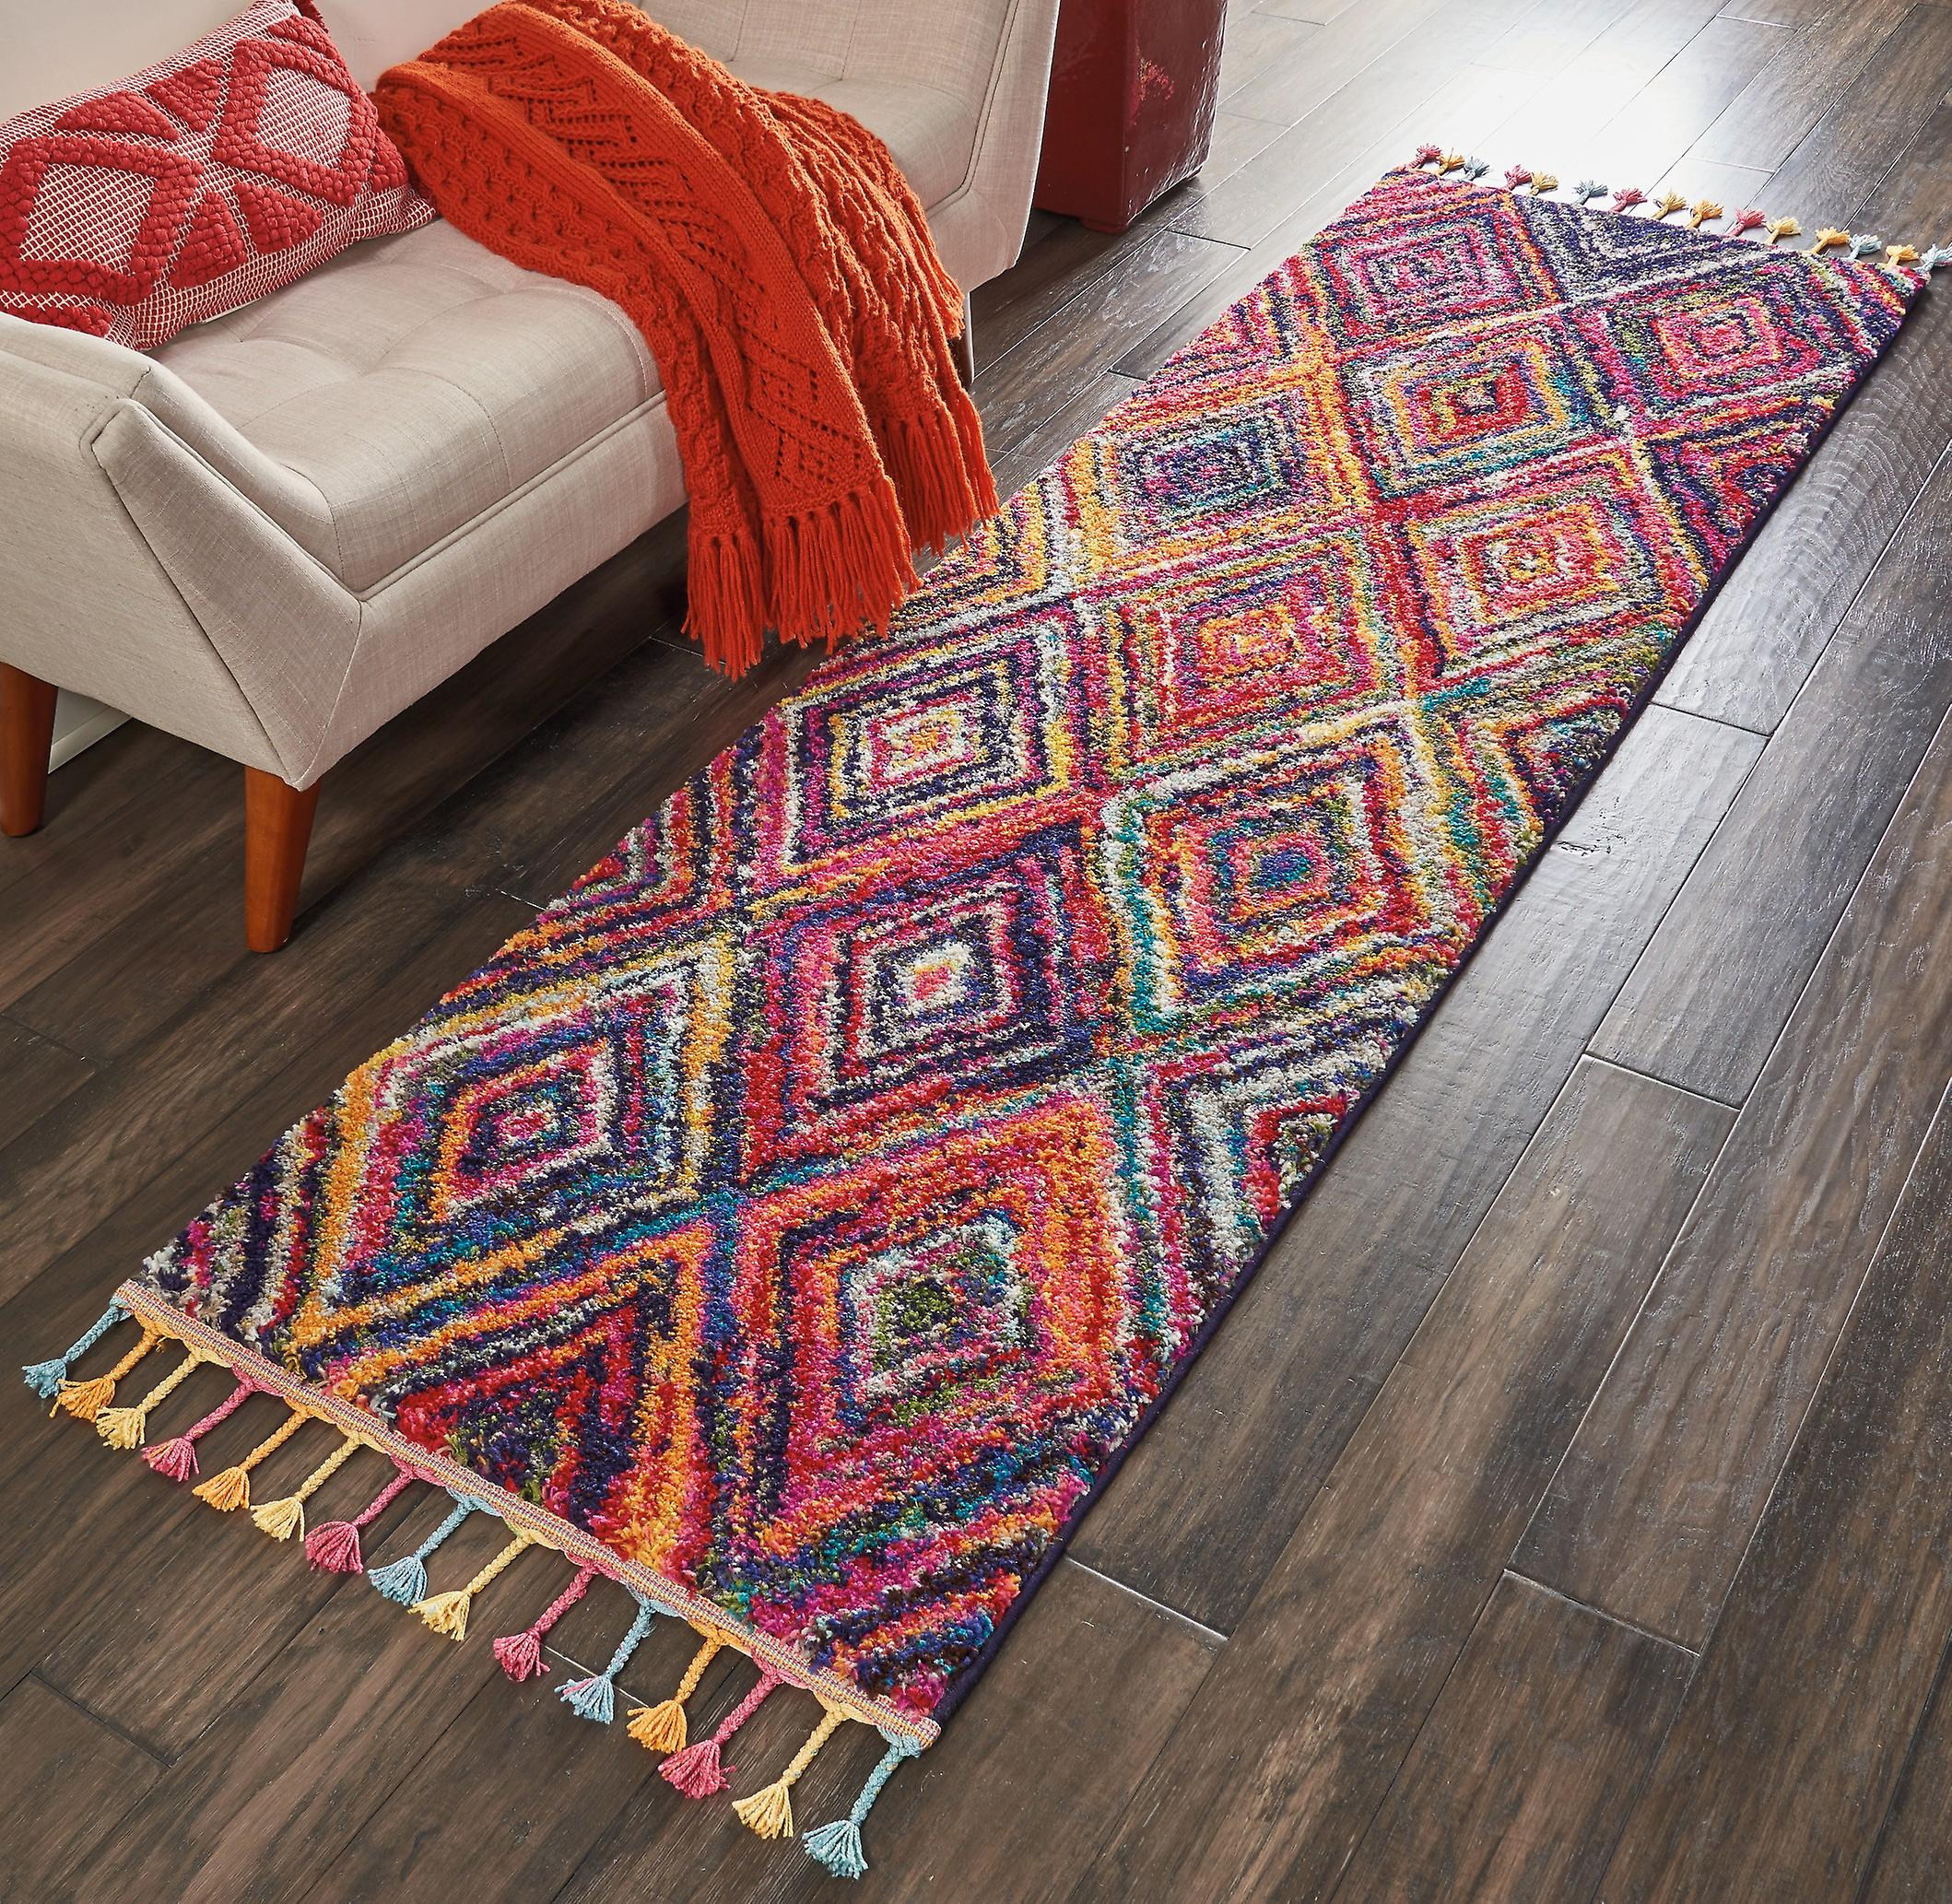 Nomad Nourison NMD01 rouge Multi  courirner Rugs Traditional Rugs